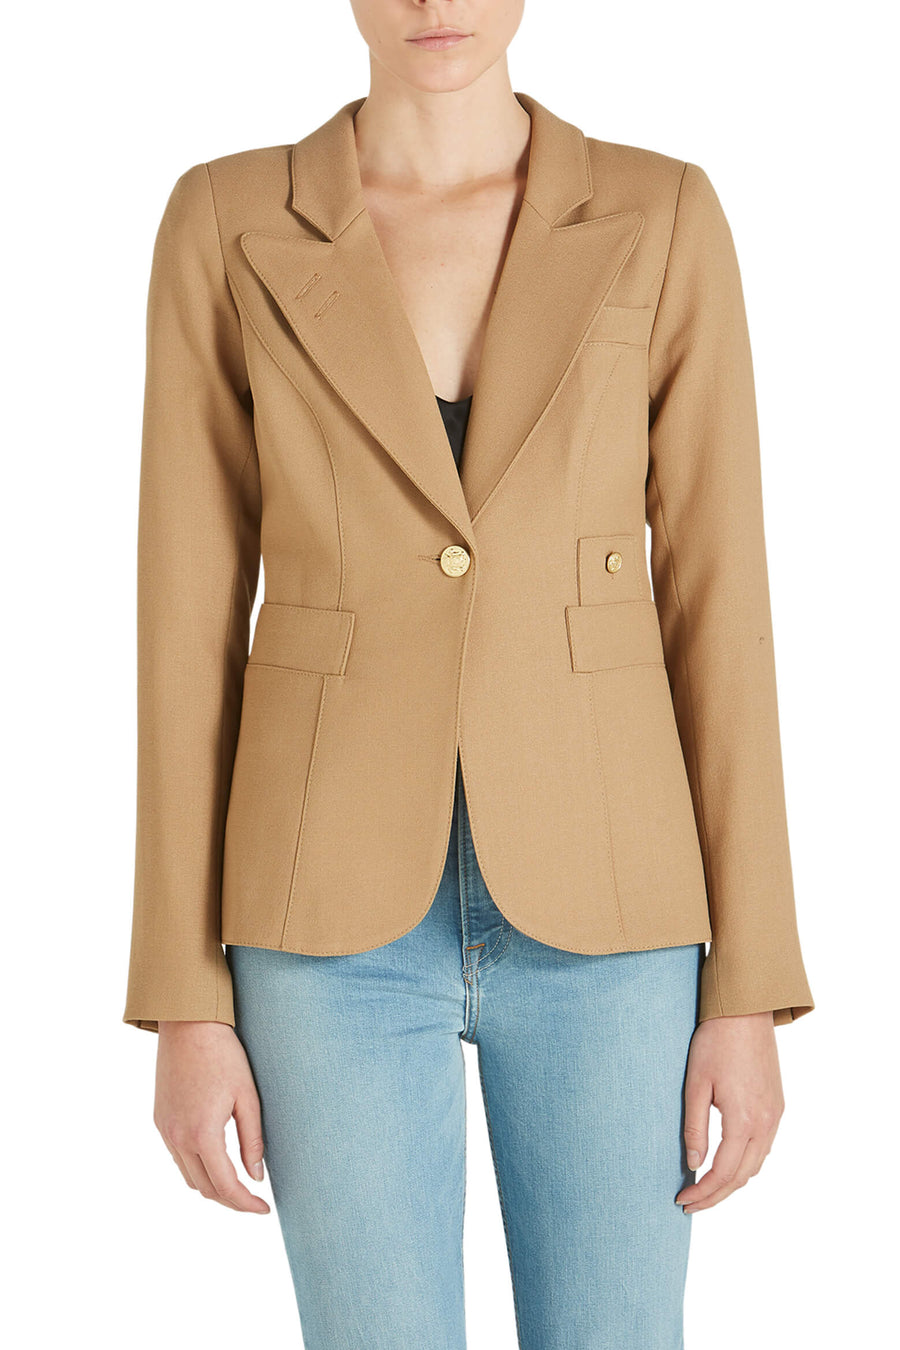 Smythe Classic Duchess Blazer Camel from The New Trend